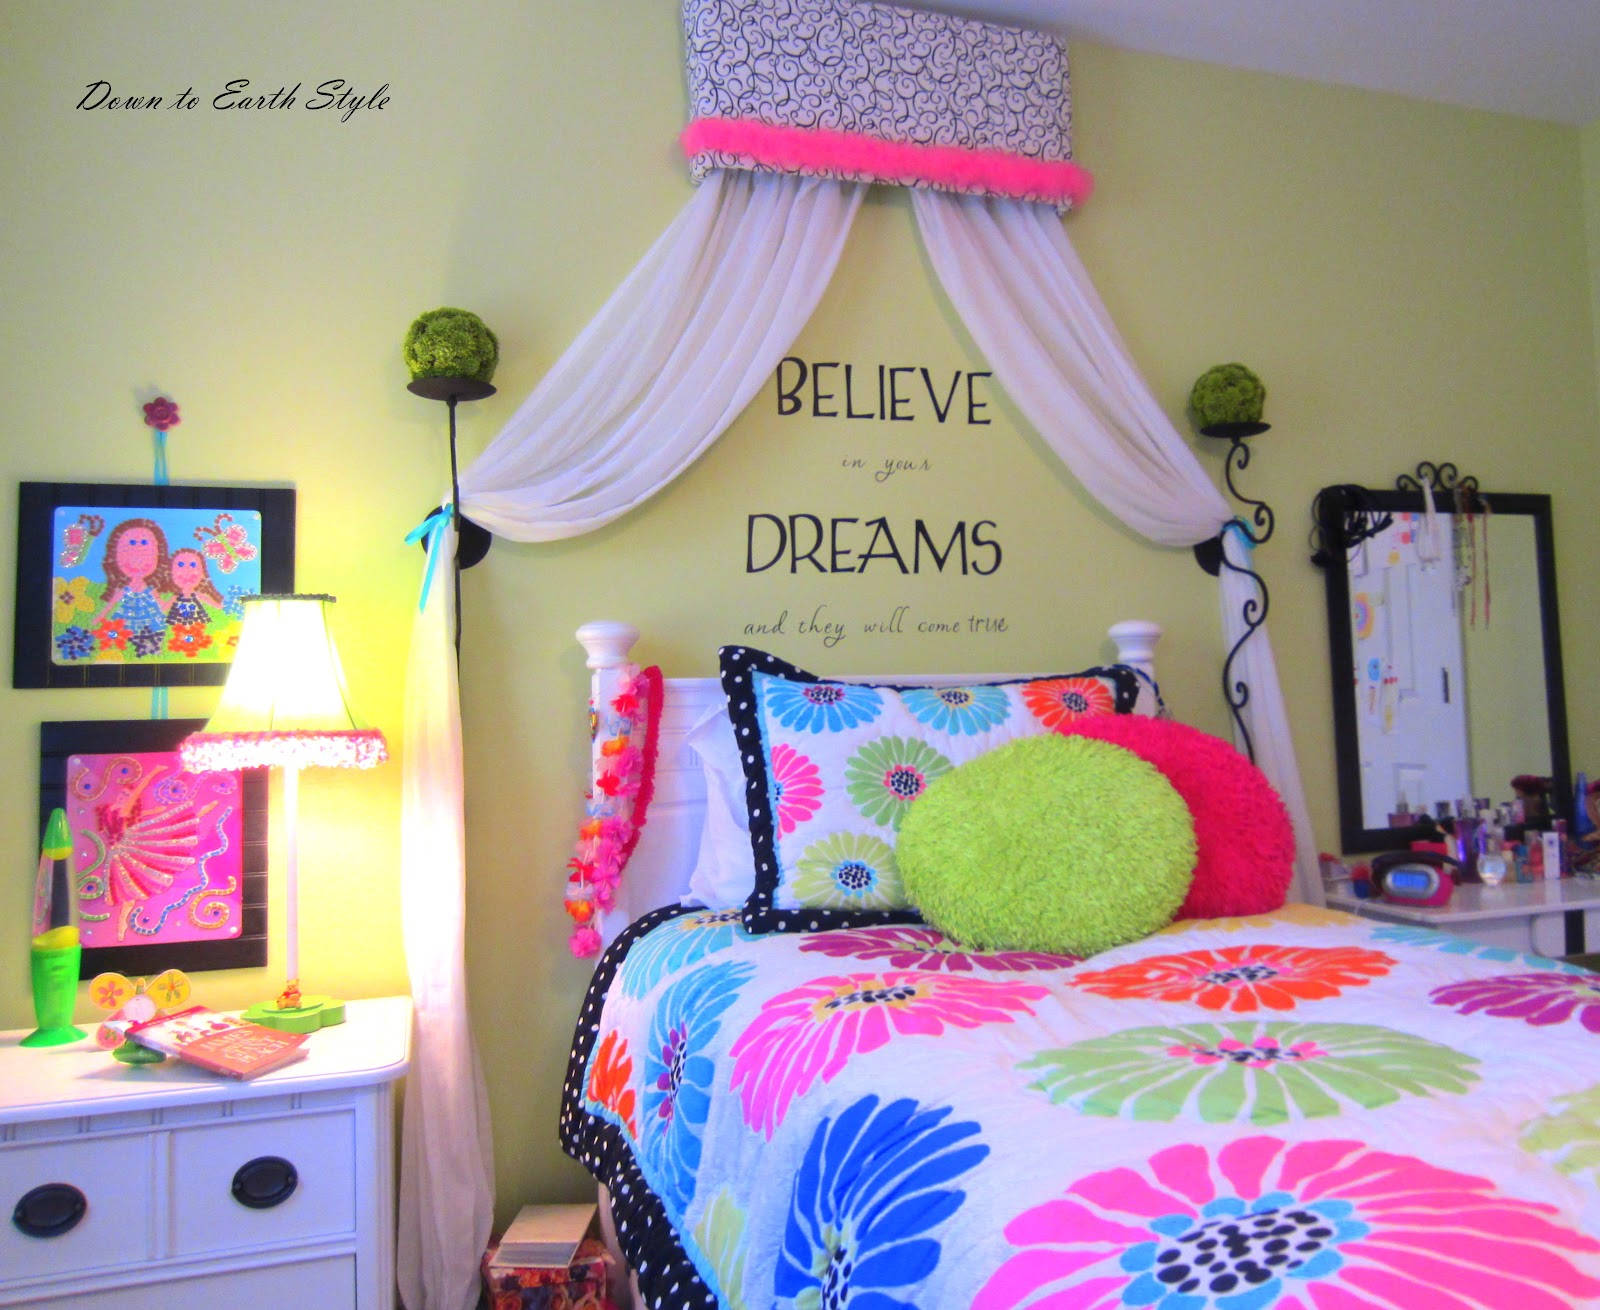 Down to earth style tween girl room for Bedroom ideas for tween girl